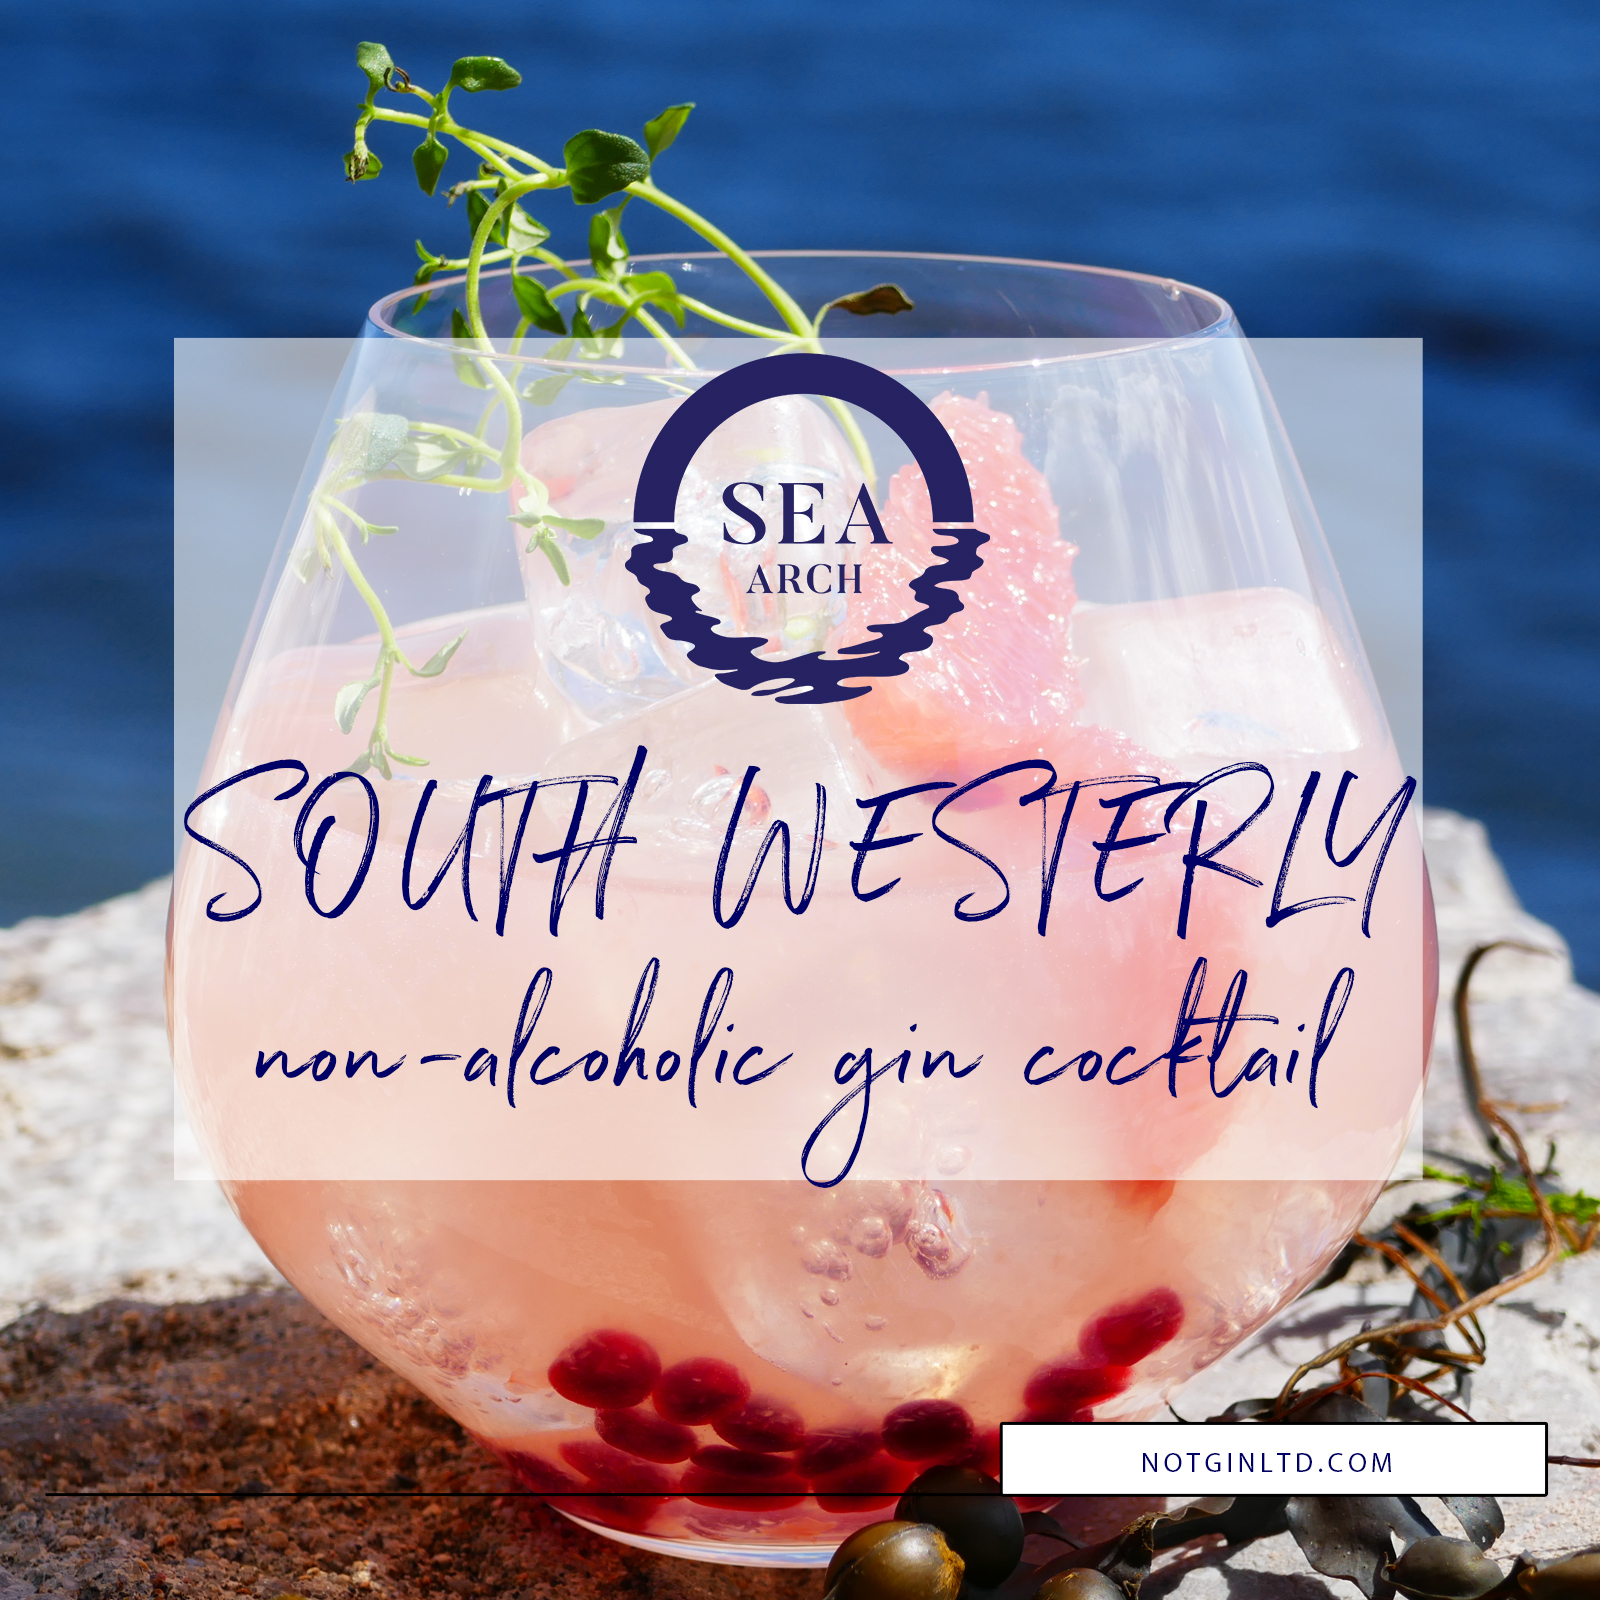 Sea Arch South Westerly non-alcoholic gin cocktail